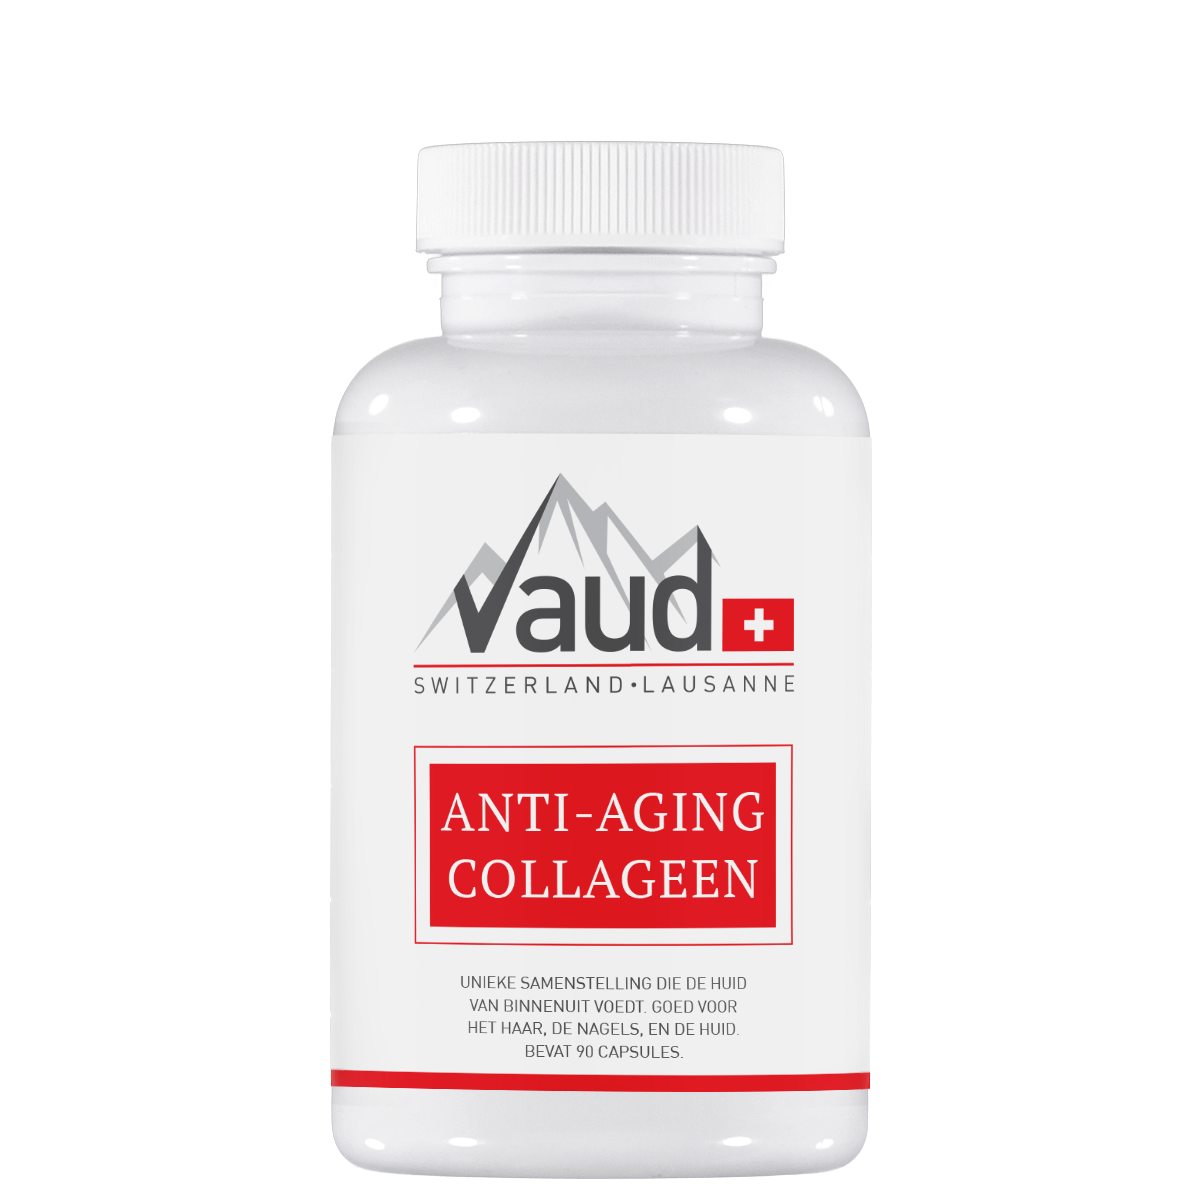 Anti-Aging Collageen Vaud